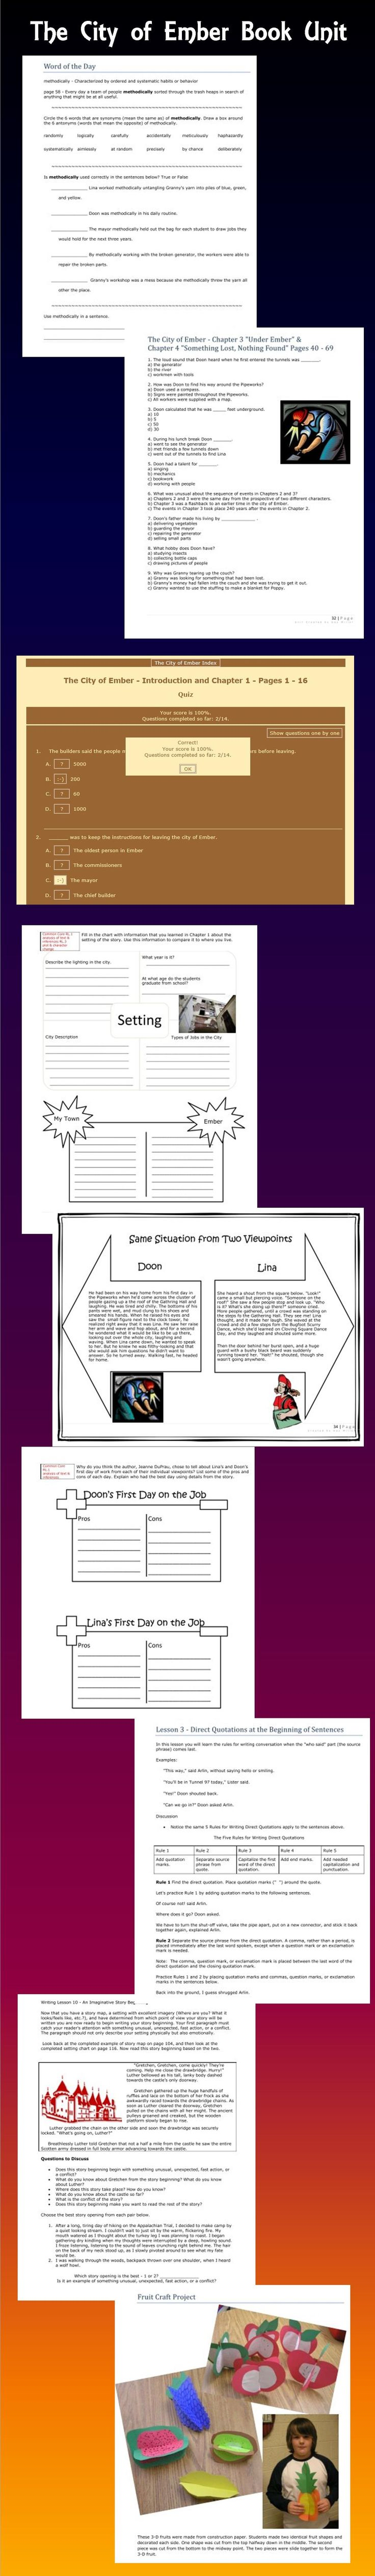 A Teacher's Resource Guide To Use With The City Of Ember Contains Lessons  Aligned To The